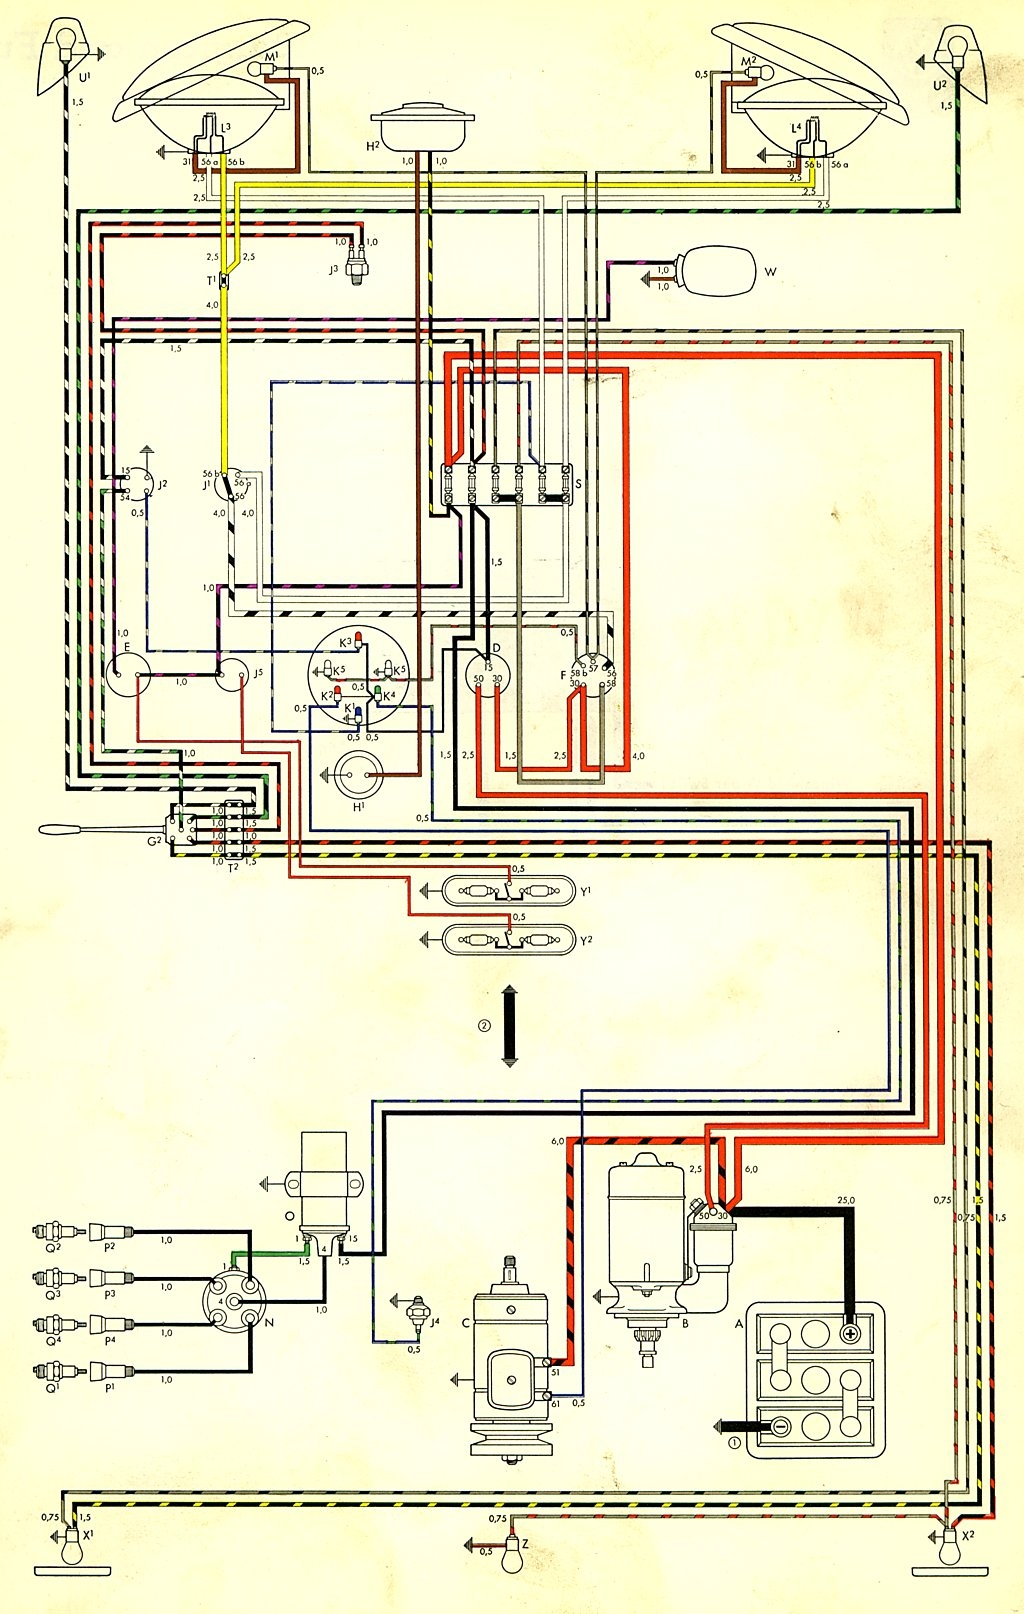 1968 Cj5 Wiring Harness 1968 Camaro Wiring Diagram Pdf Free Wiring Diagram